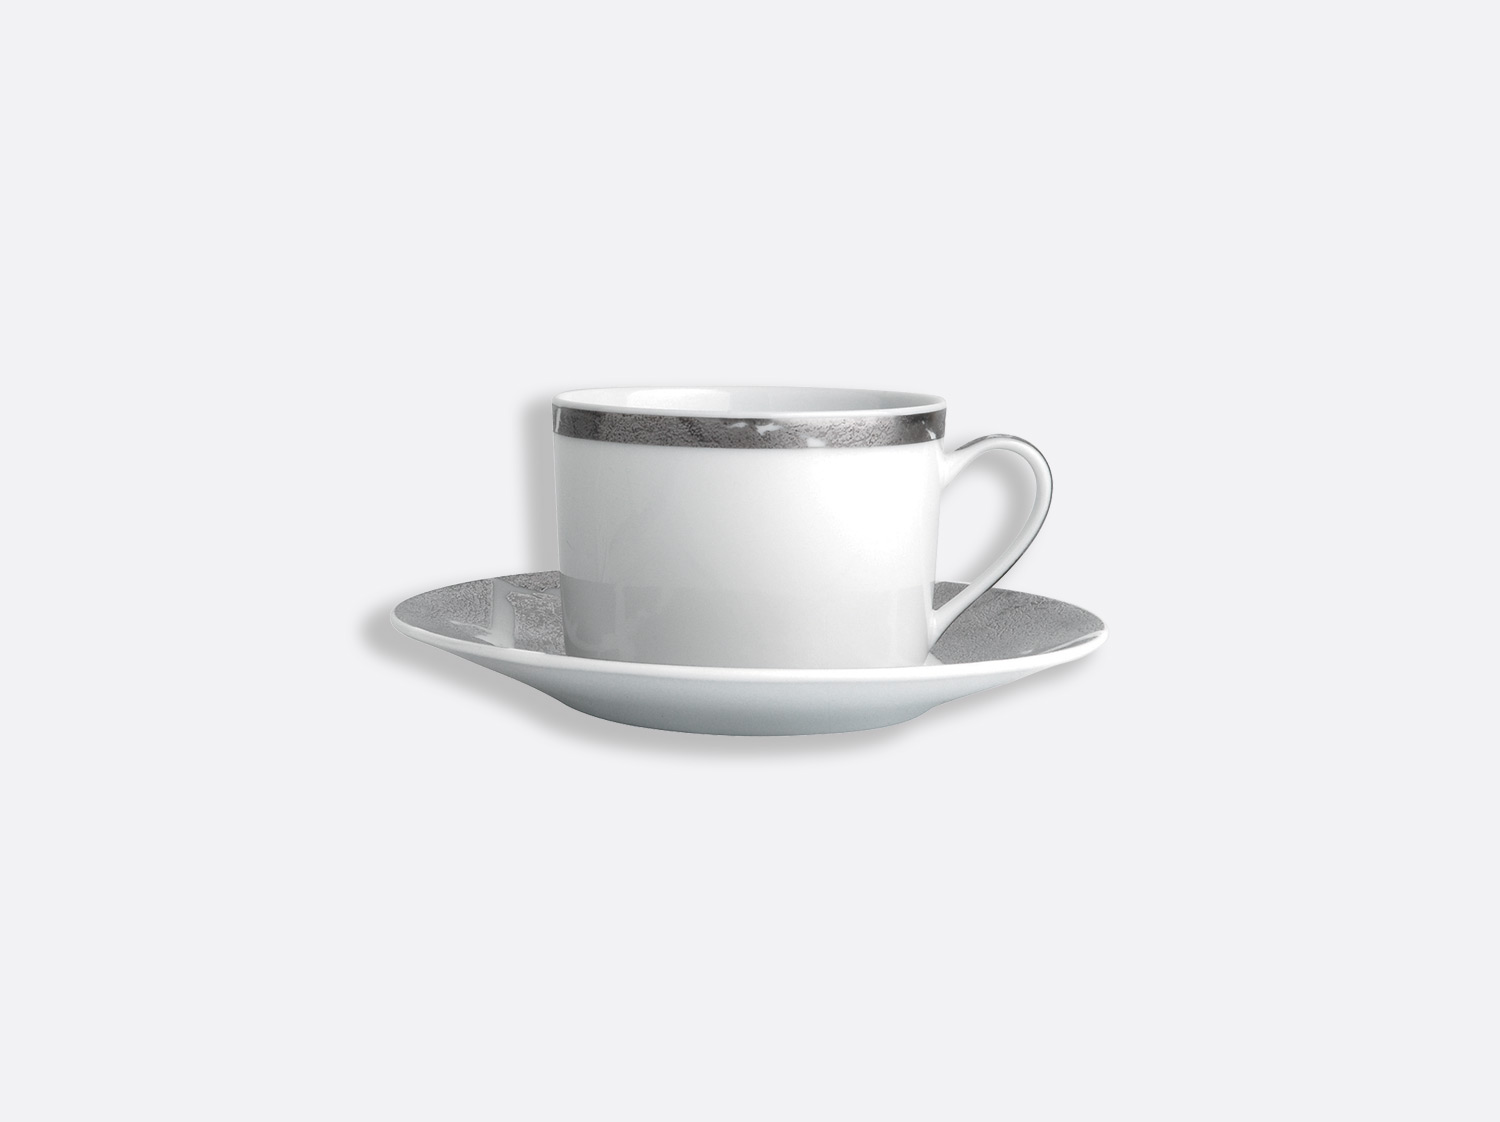 China Tea cup and saucer gift box - 15 cl - Per unit of the collection Silver leaf | Bernardaud